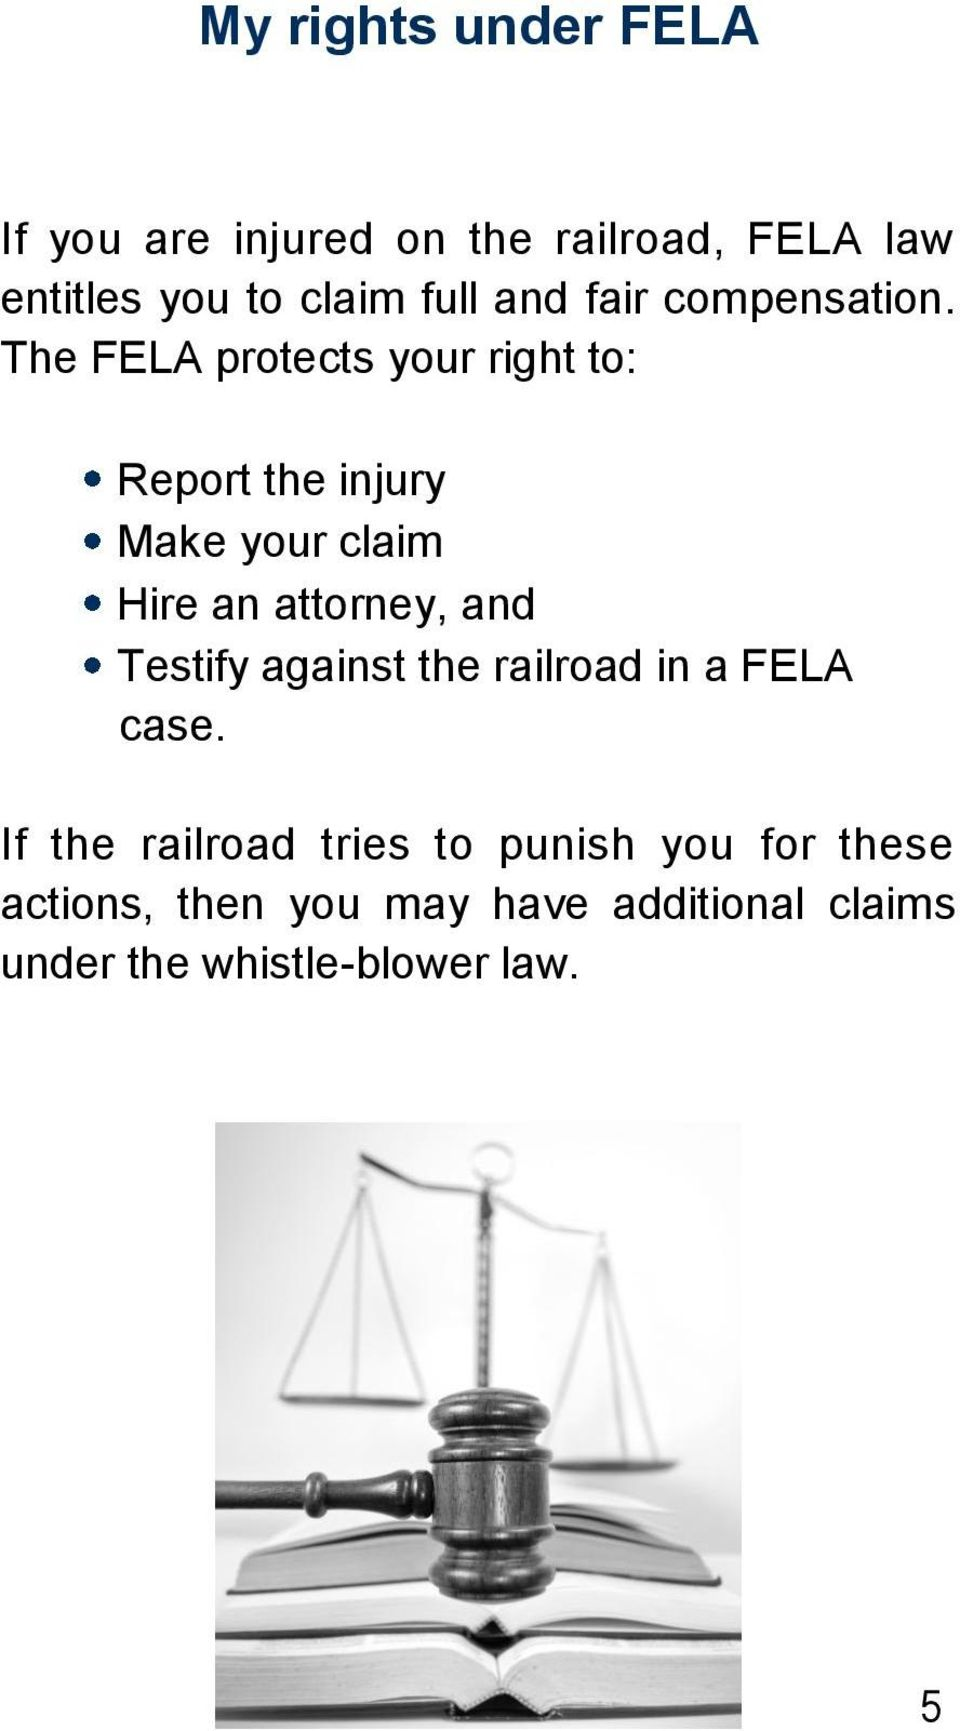 The FELA protects your right to: Report the injury Make your claim Hire an attorney, and